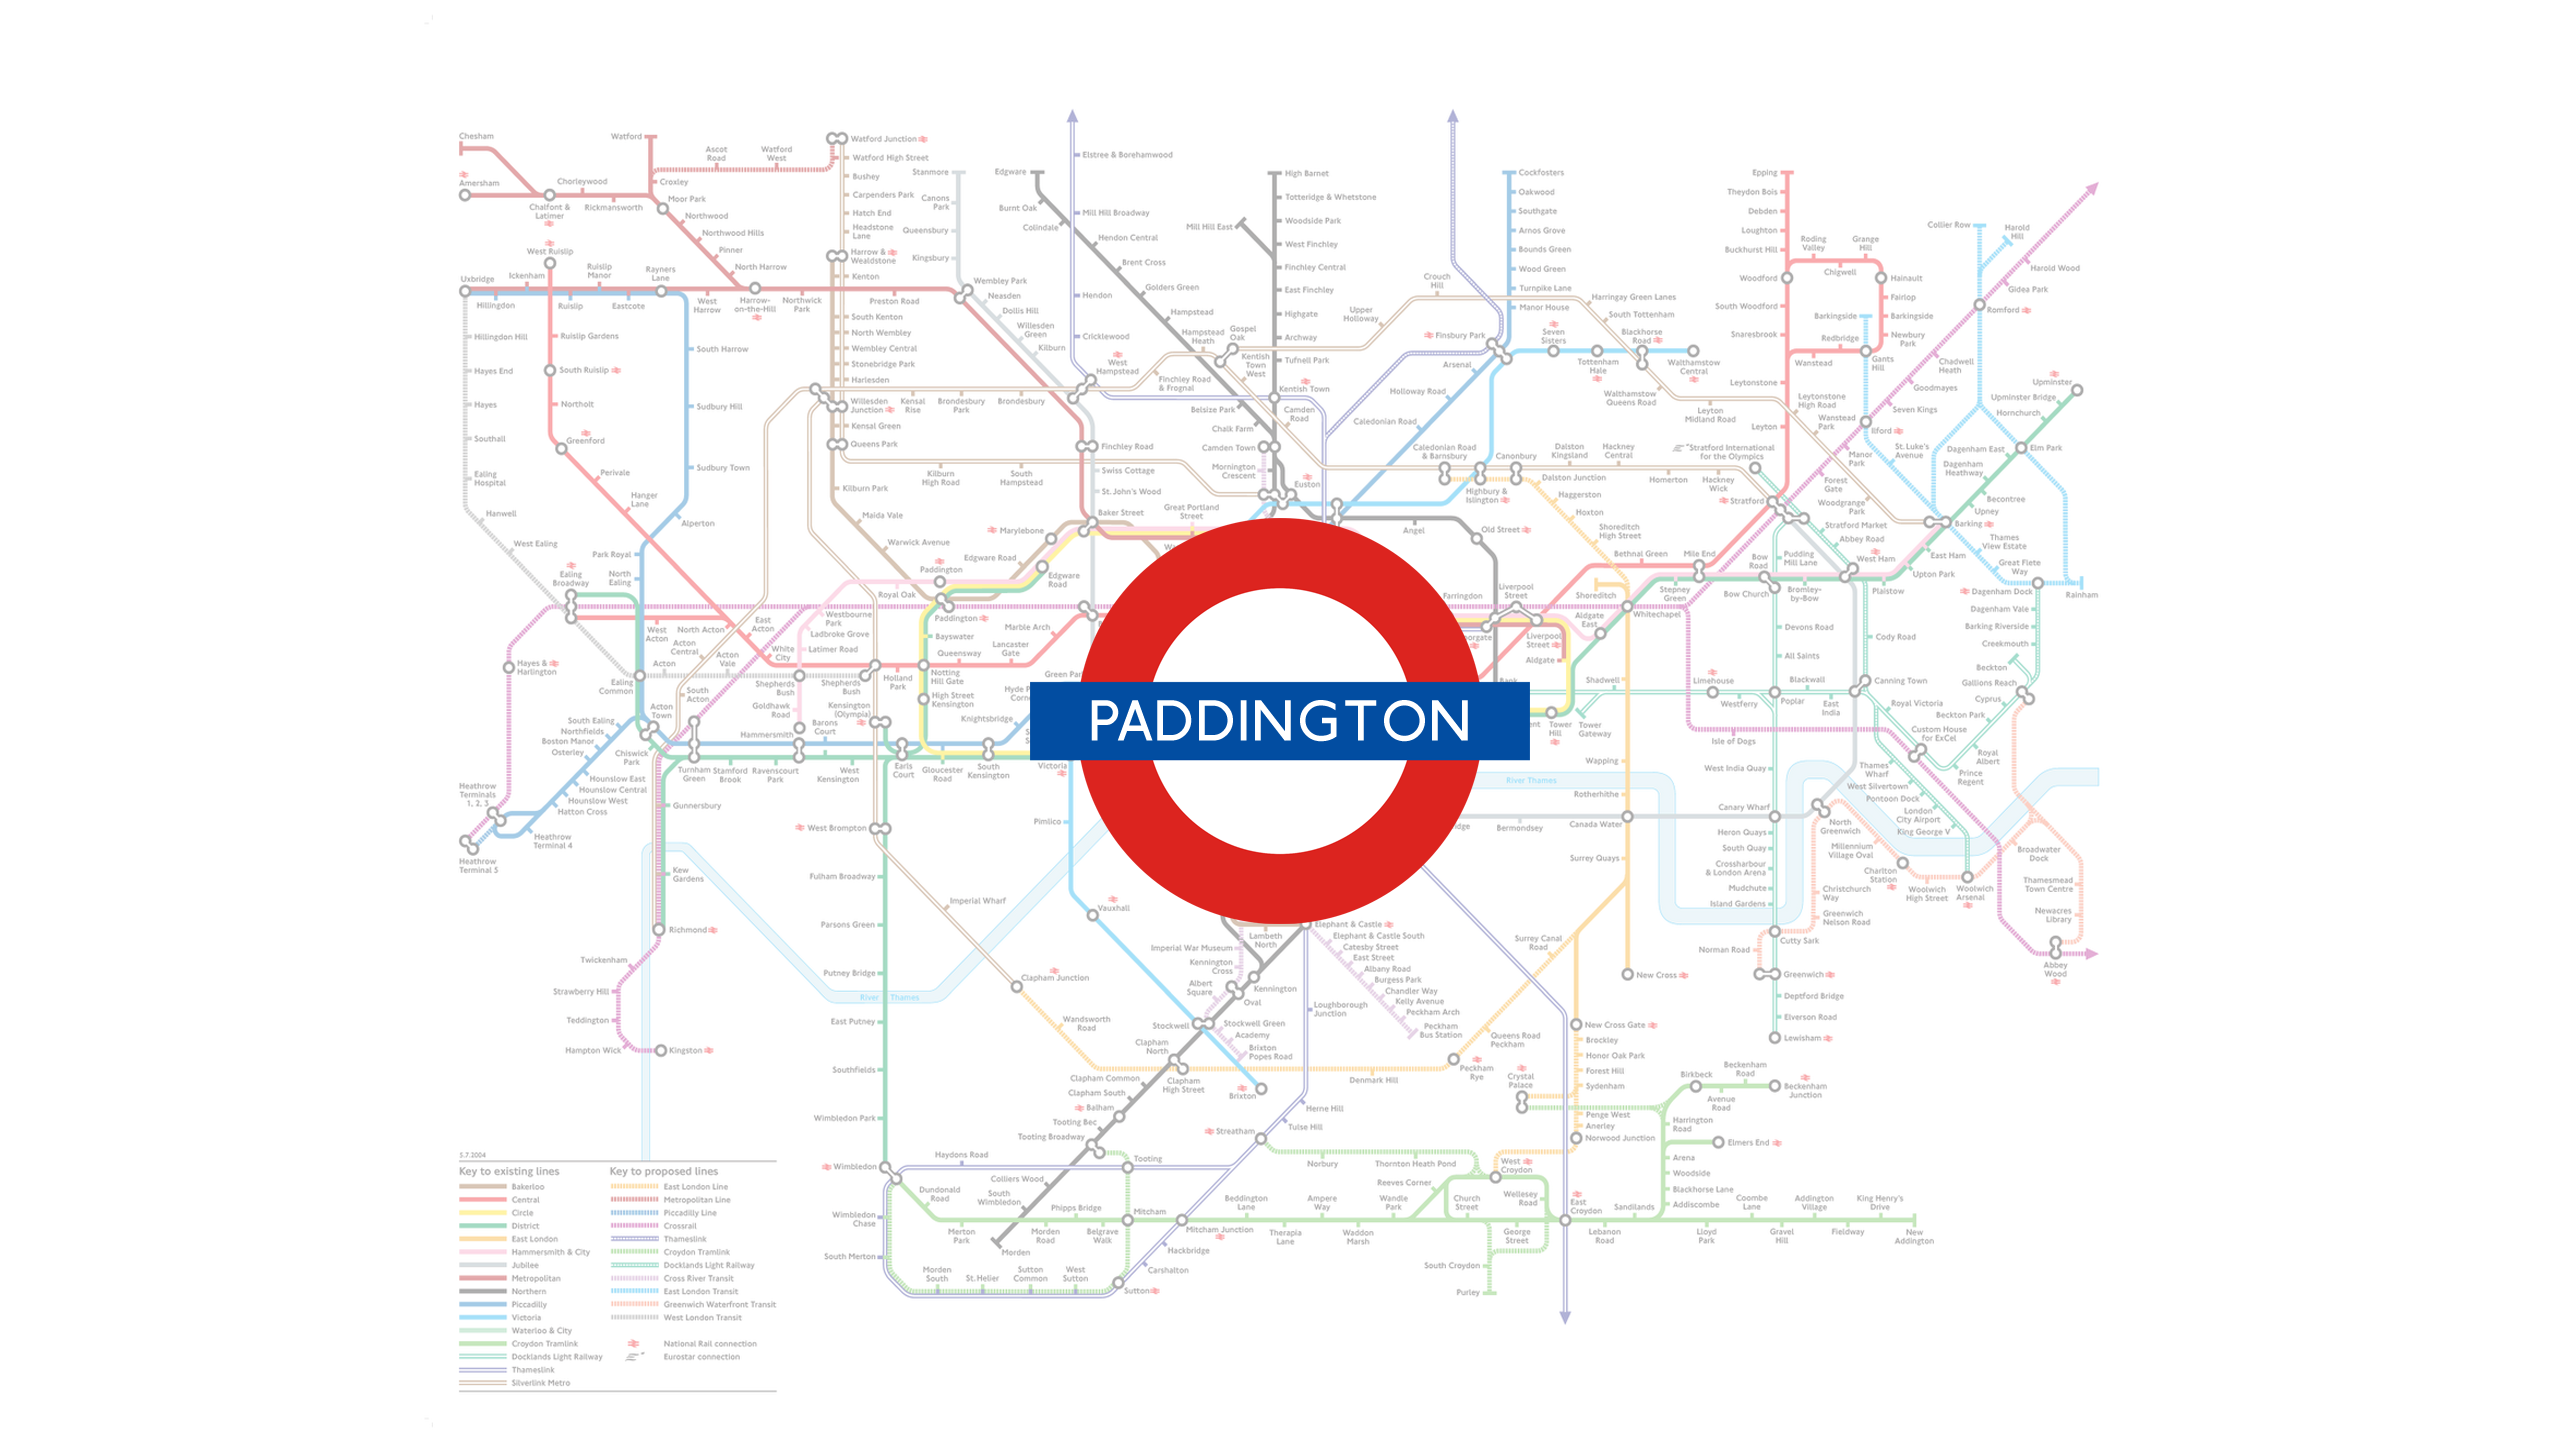 Paddington (Map)